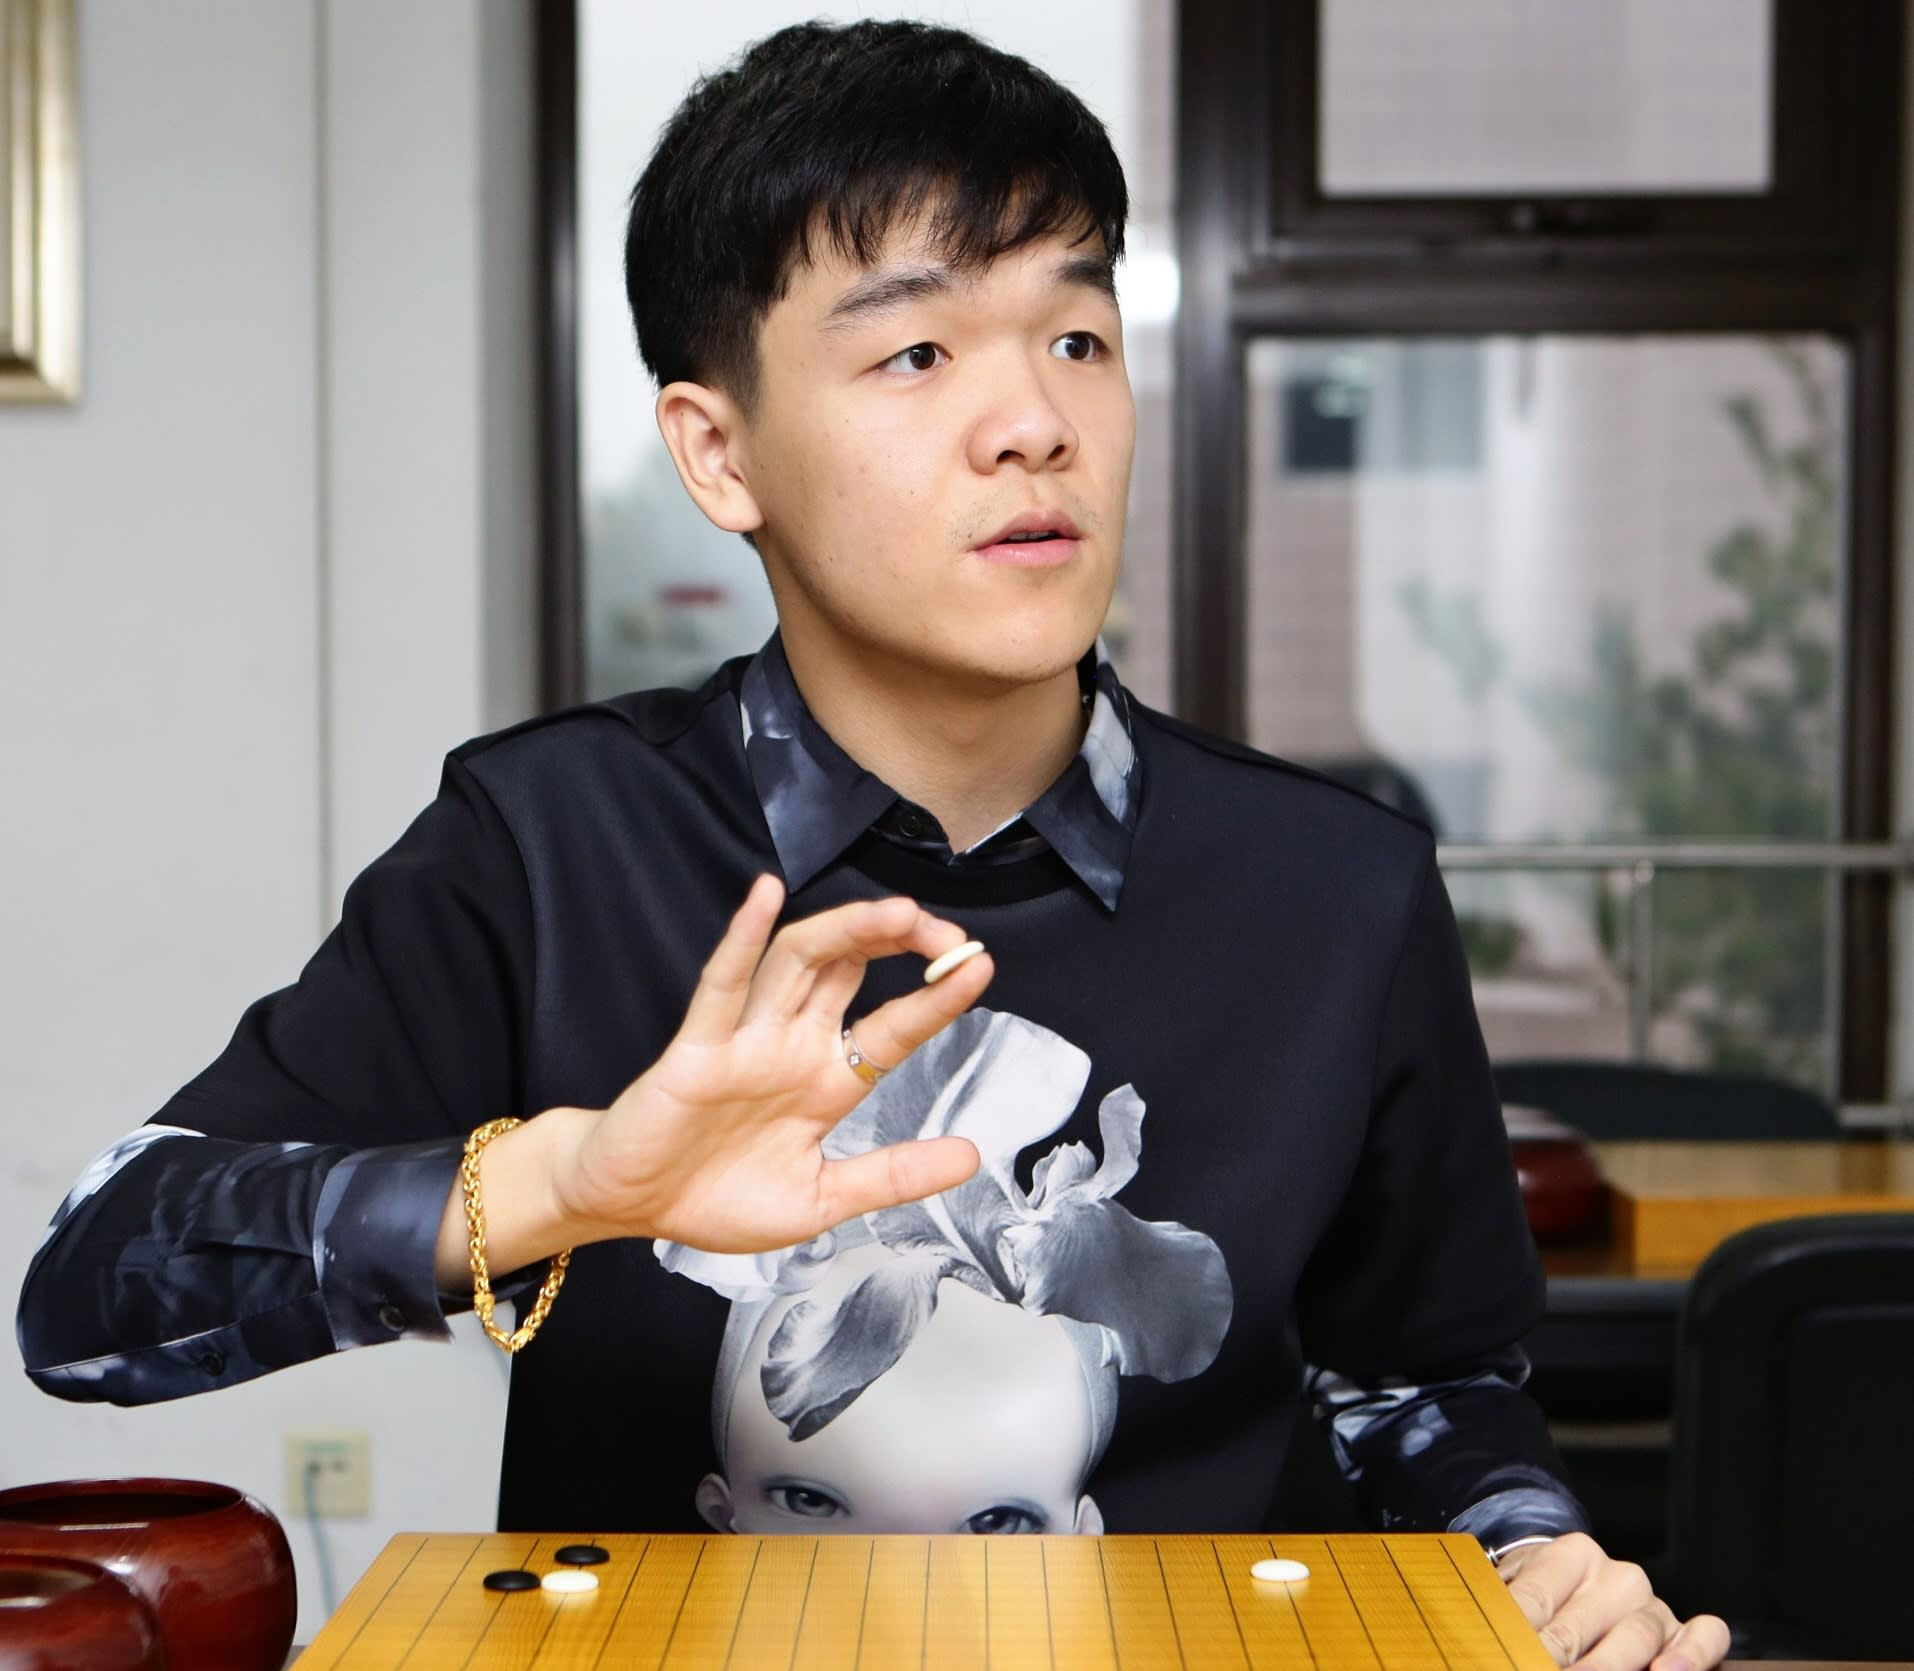 The Go champ taking on AI - Nikkei Asian Review